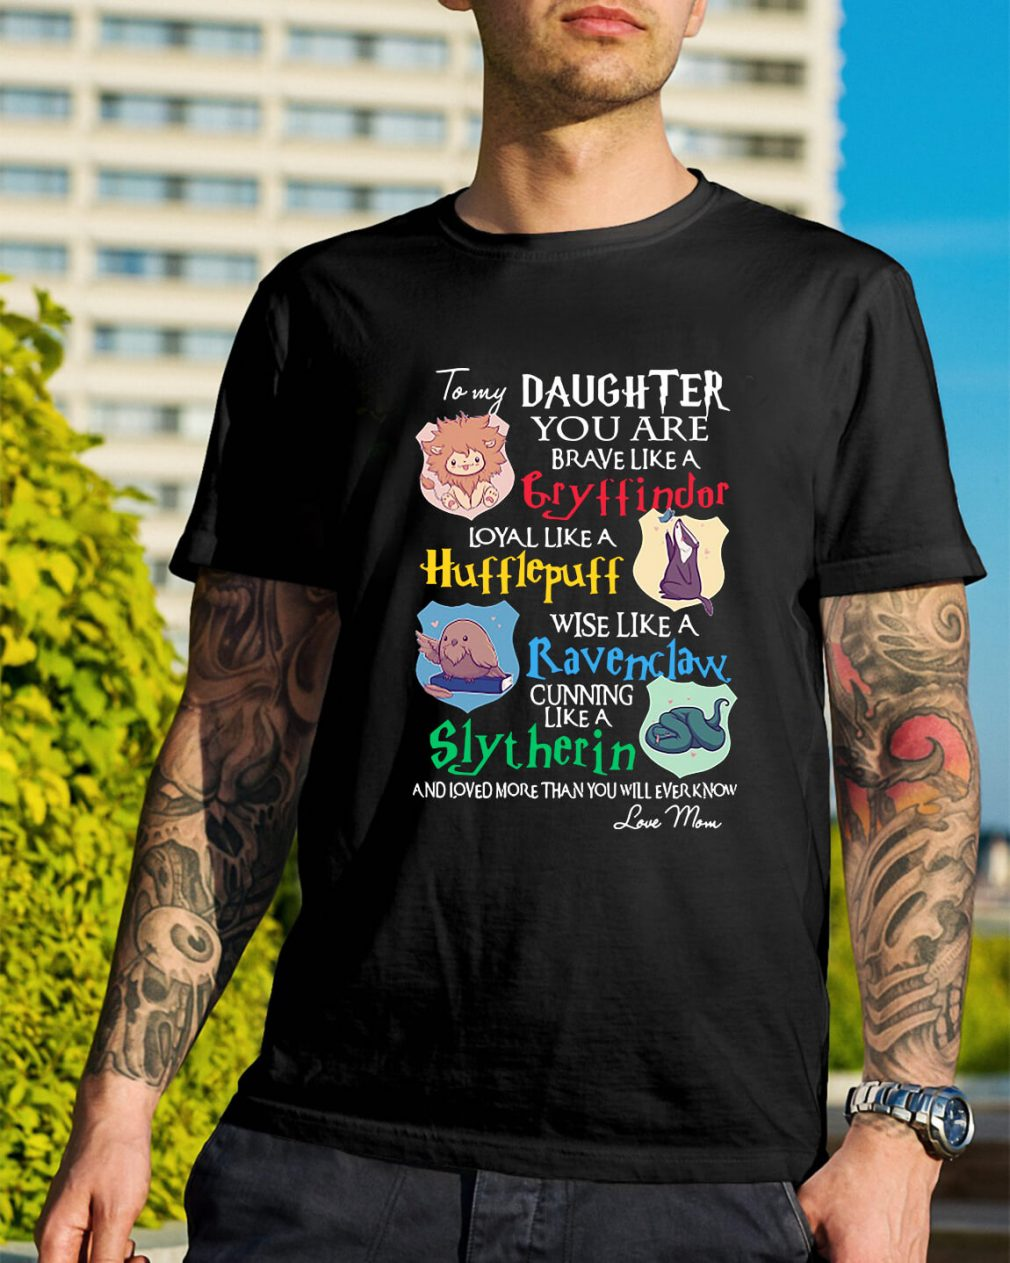 To my daughter you are Gryffindors loyal like a Hufflepuff shirt